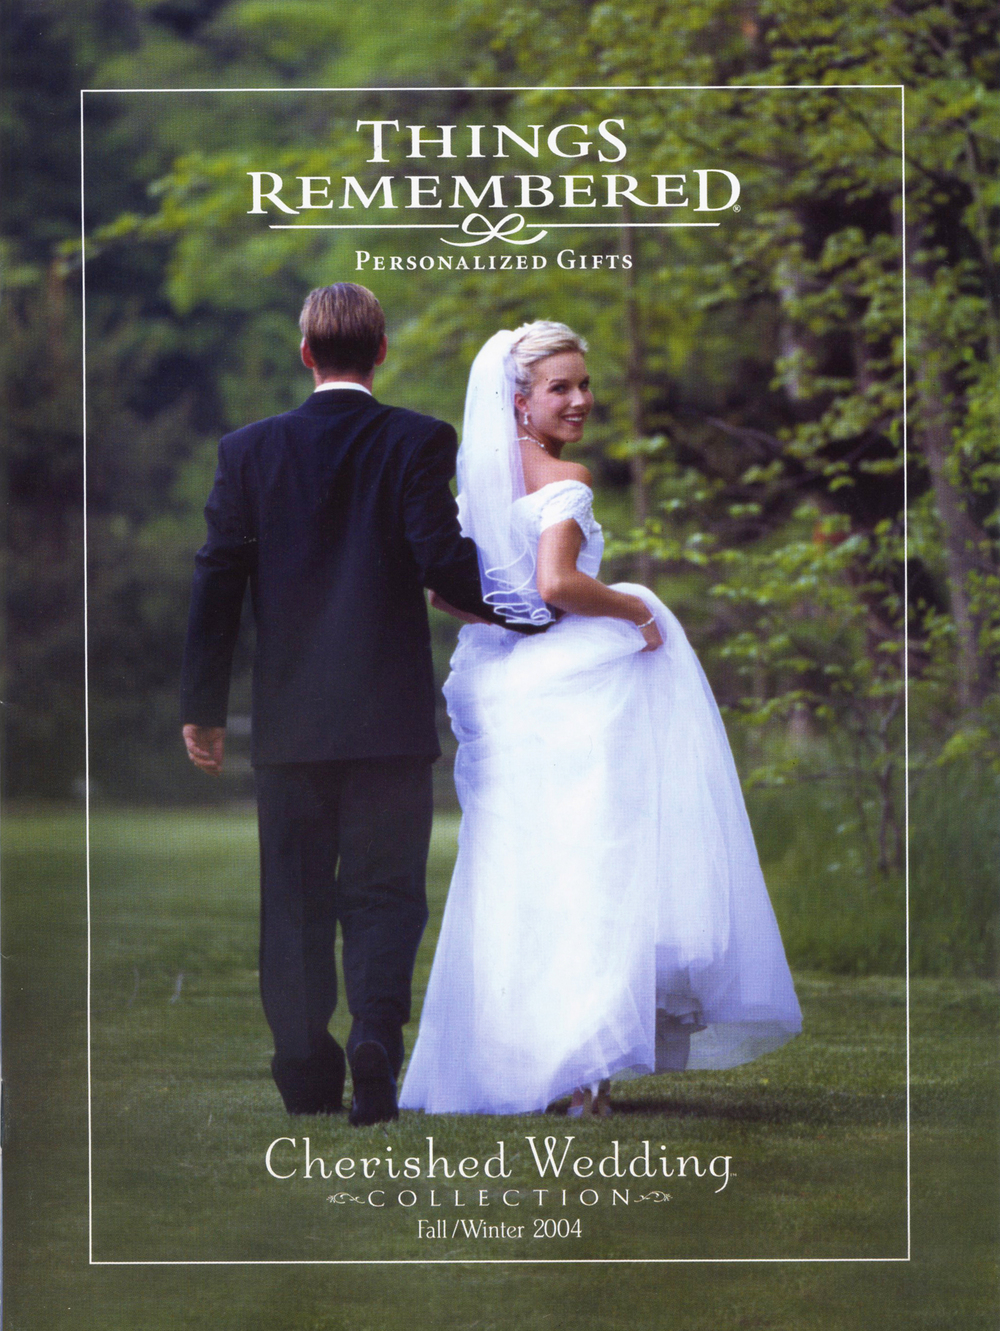 Things Remembered Wedding collection catalogs.Talent shot on location